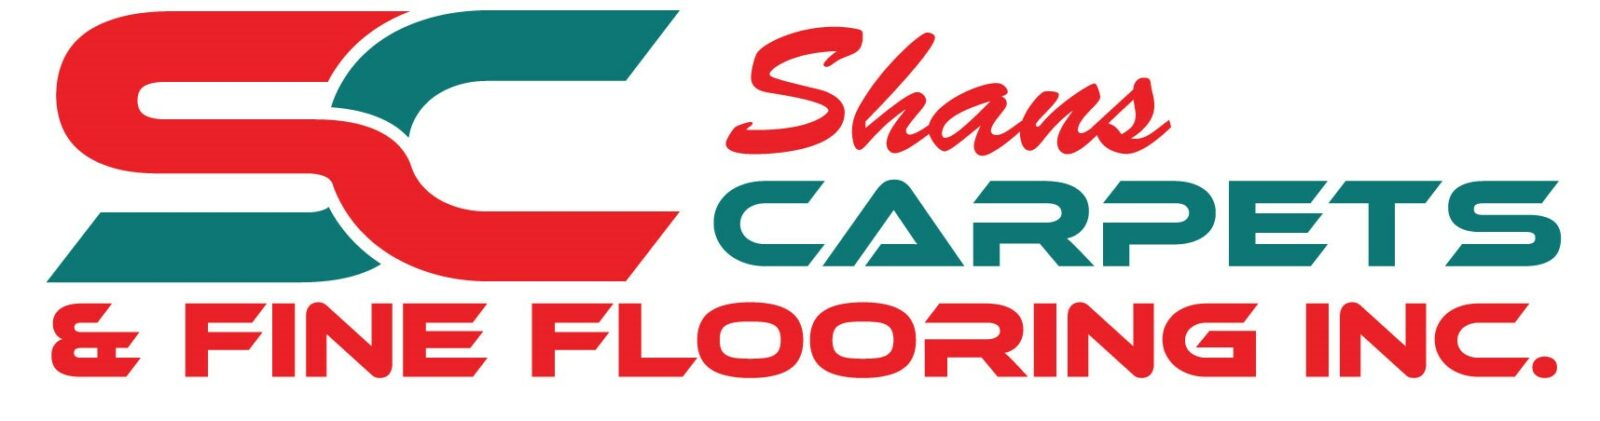 SHANS CARPETS AND FINE FLOORING INC